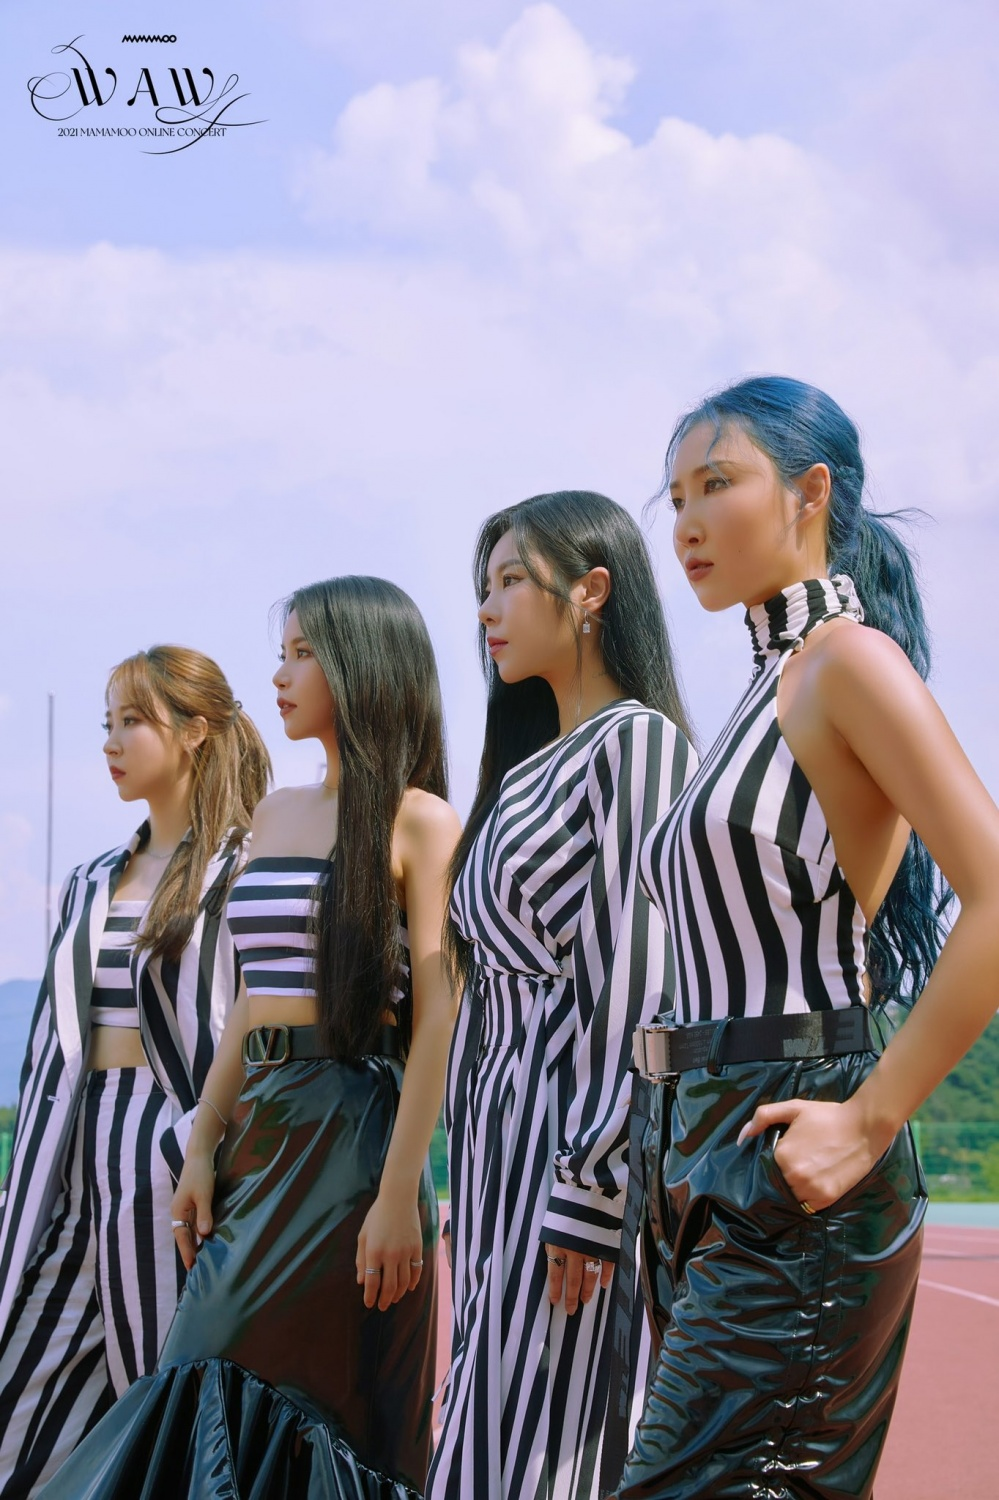 Mamamoo, online concert 'WAW' lovely teaser released… radiating bright energy